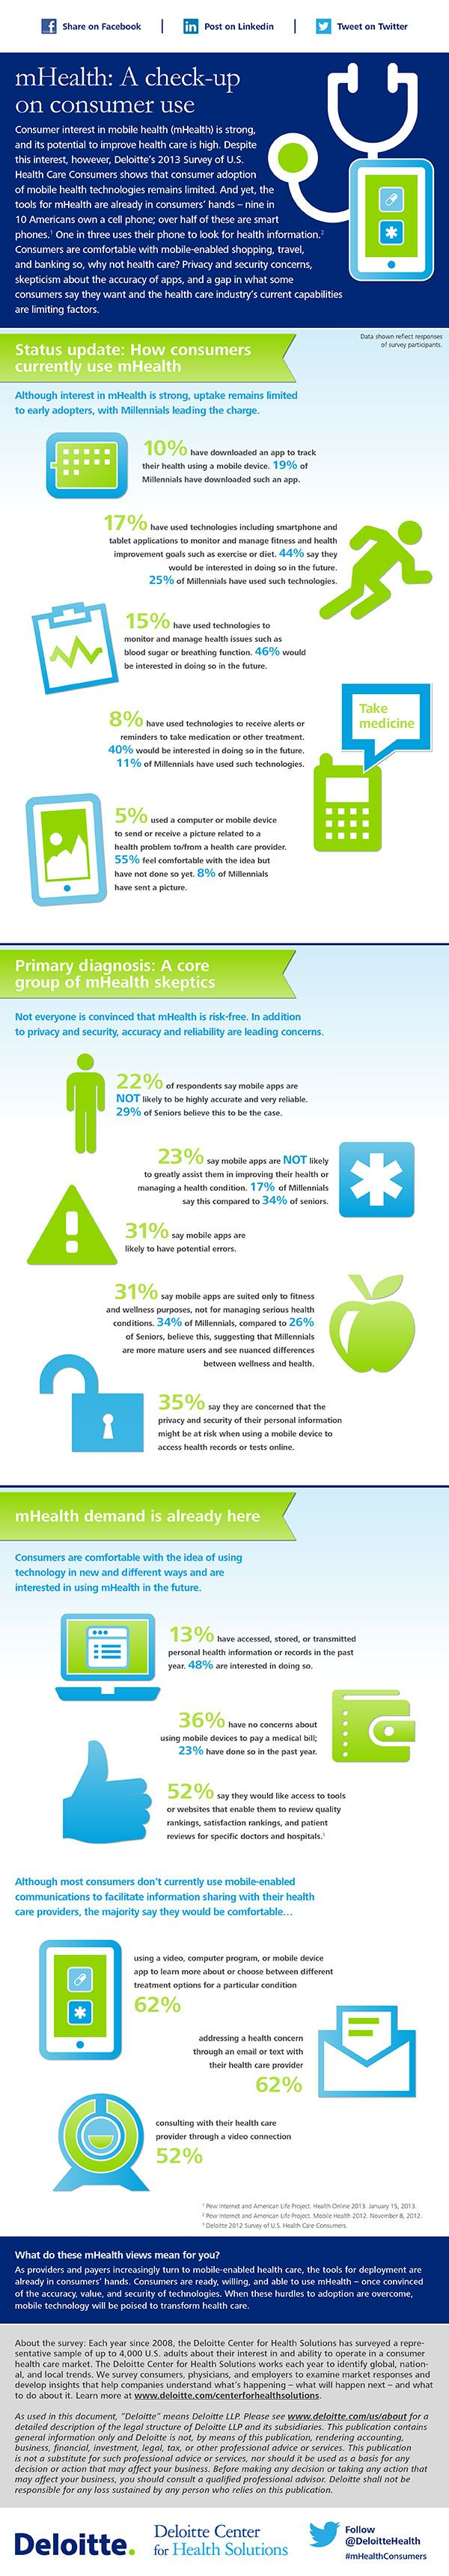 Deloitte | Infographic #mHealth: A check-up on consumer use | Health IT | Center for #Health Solutions #ehealth #futurofhealth